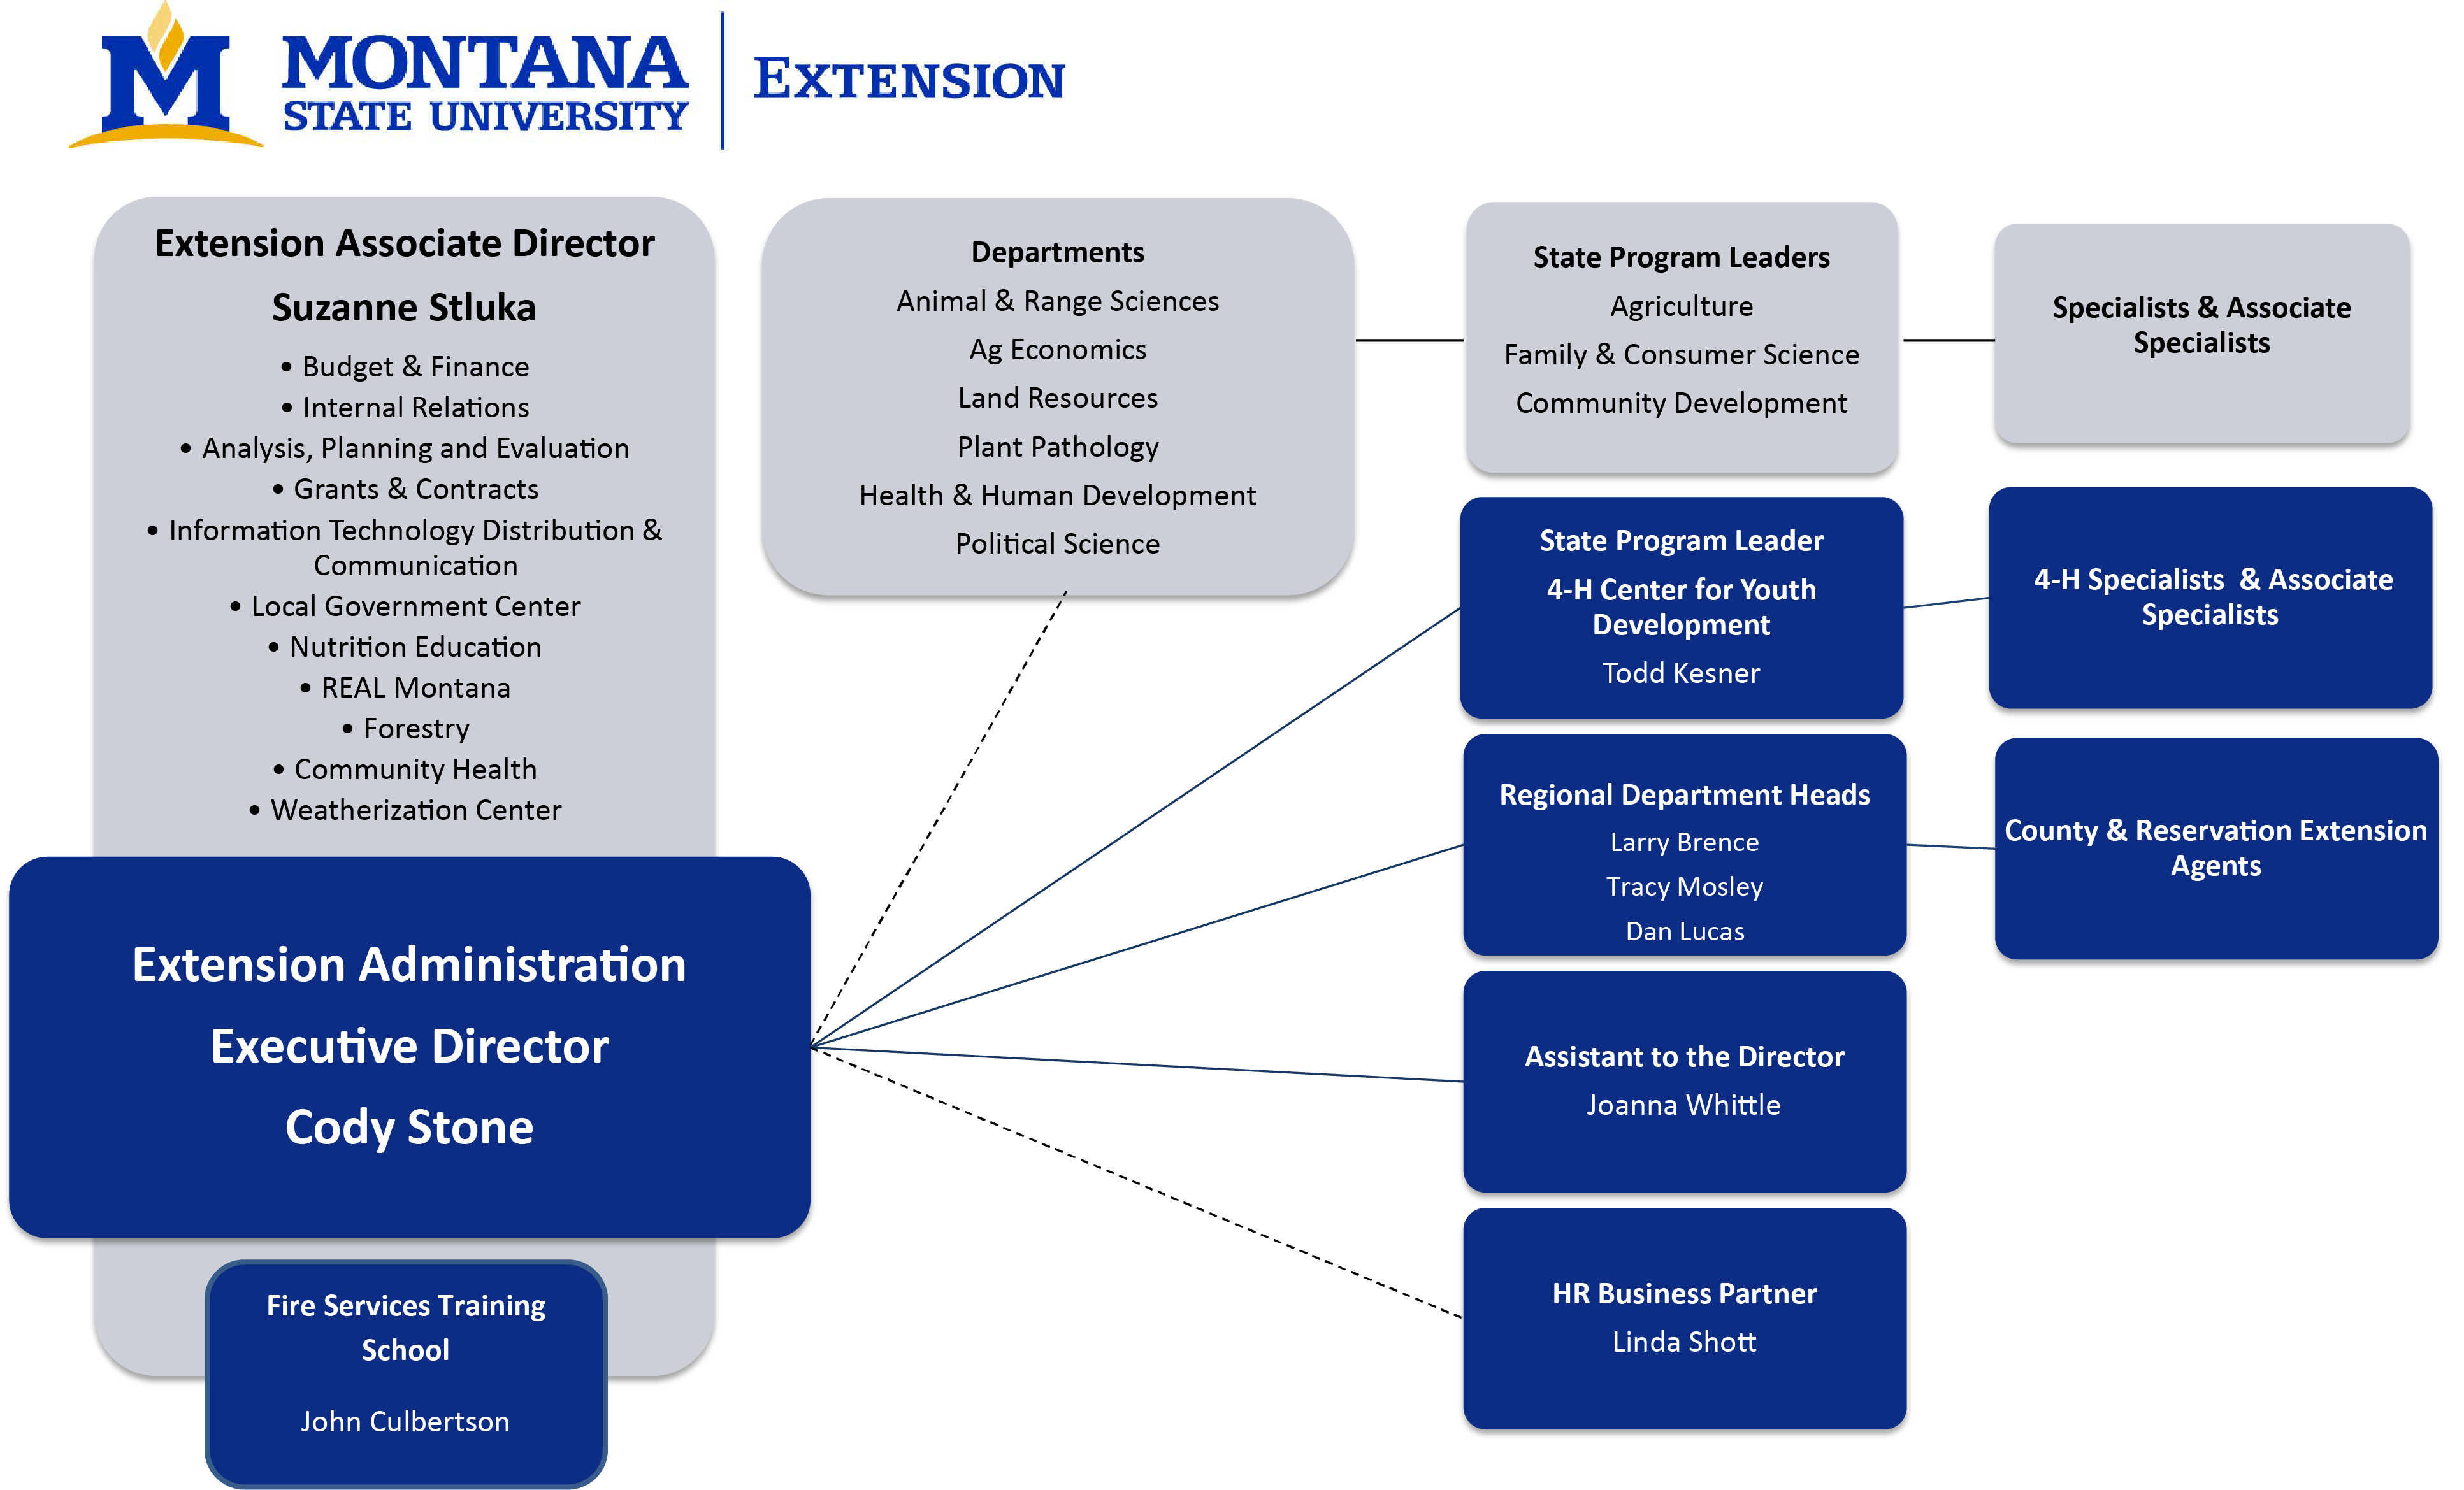 This image describes the administratve organizational structure of MSU Extension.